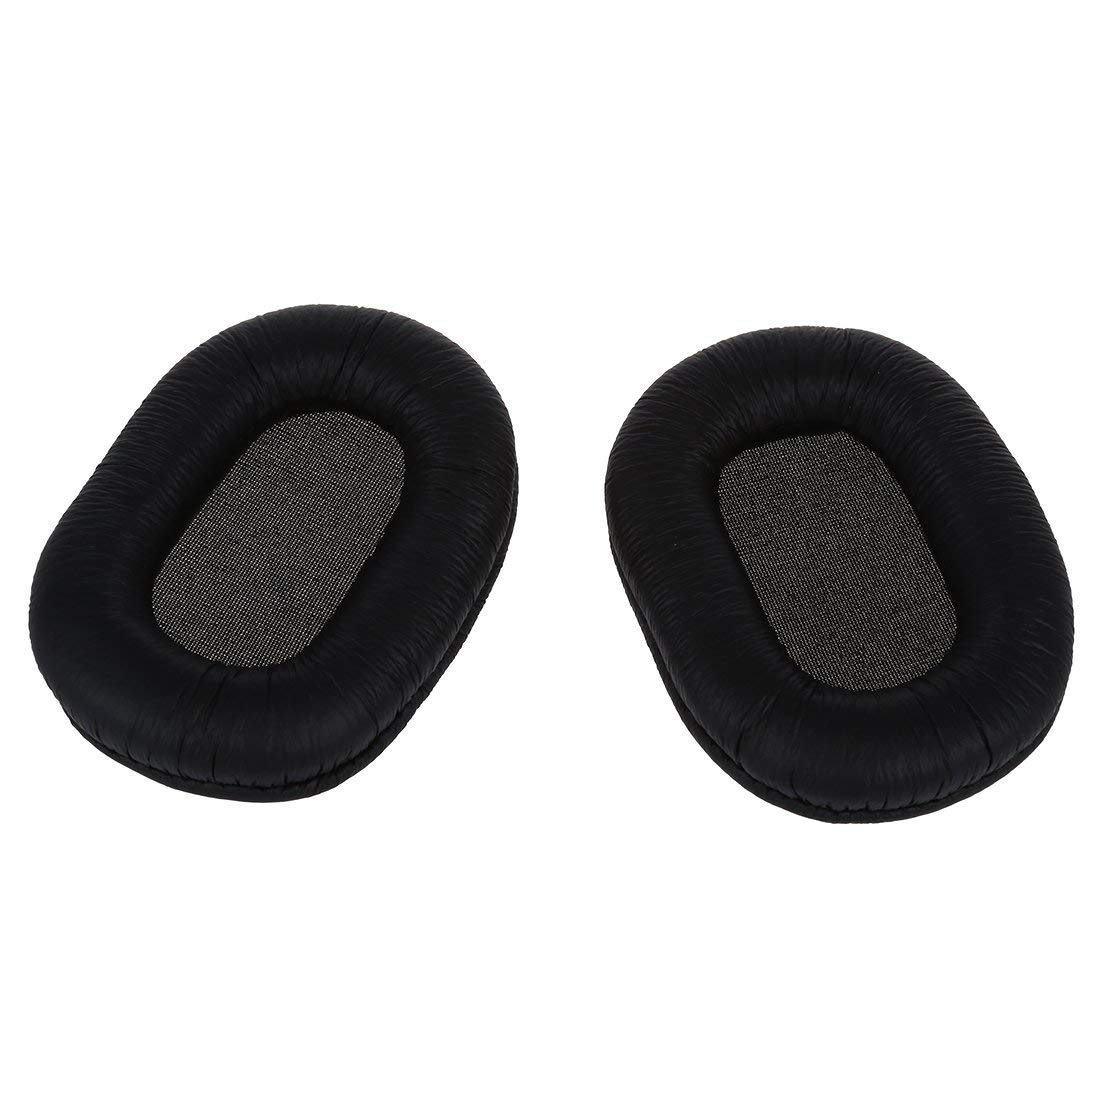 Ear Pads-TOOGOO(R) Replacement Earphones Ear pads Headset for Sony MDR-7506 MDR-V6